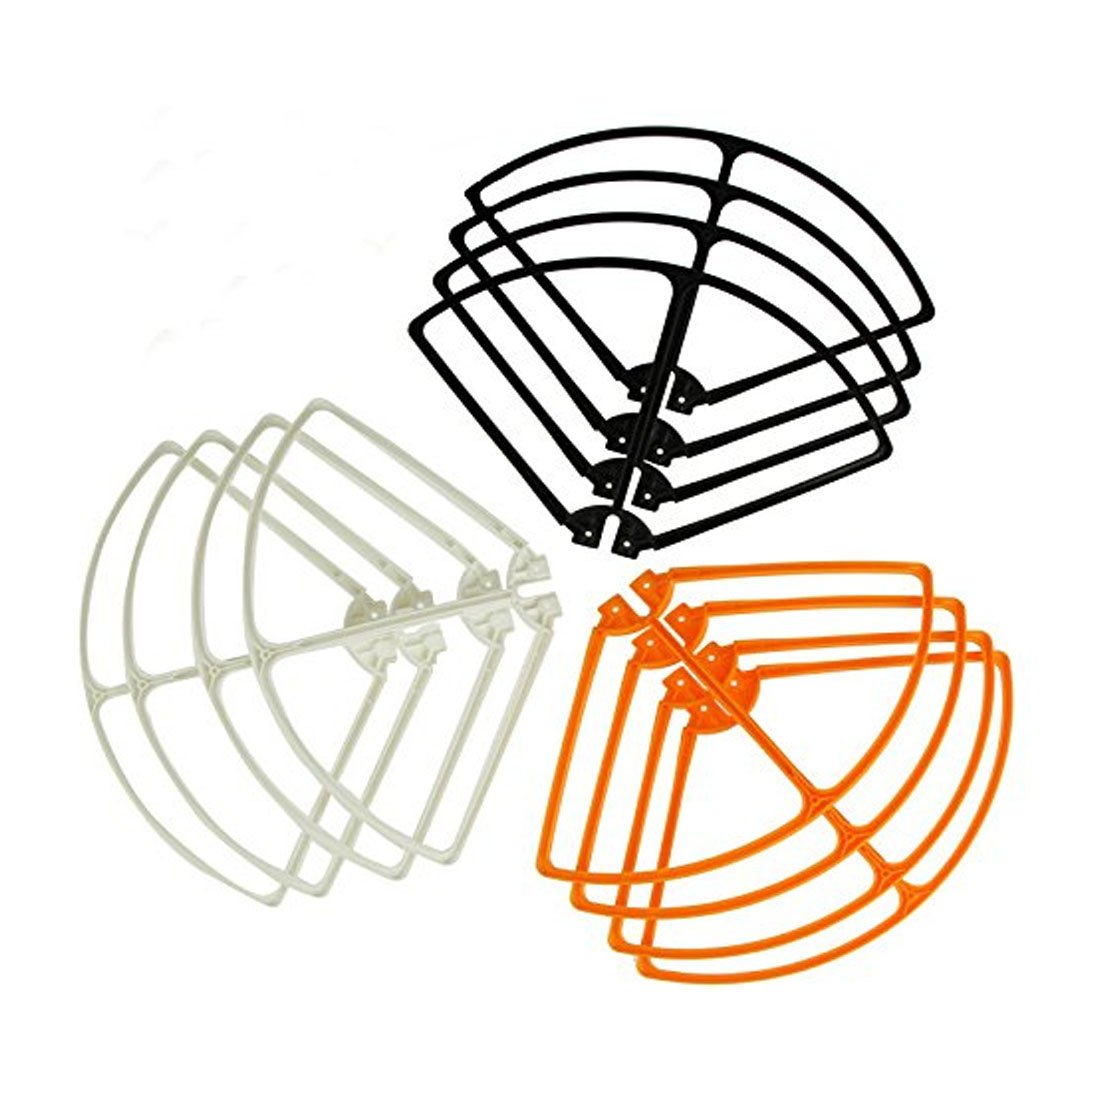 Coolplay® Syma X8 X8C X8W X8G Props Protective Frame Guard Spare Parts for RC Quadcopter ( 4 X black,4 X orange,4 X white) ASSMX8C234